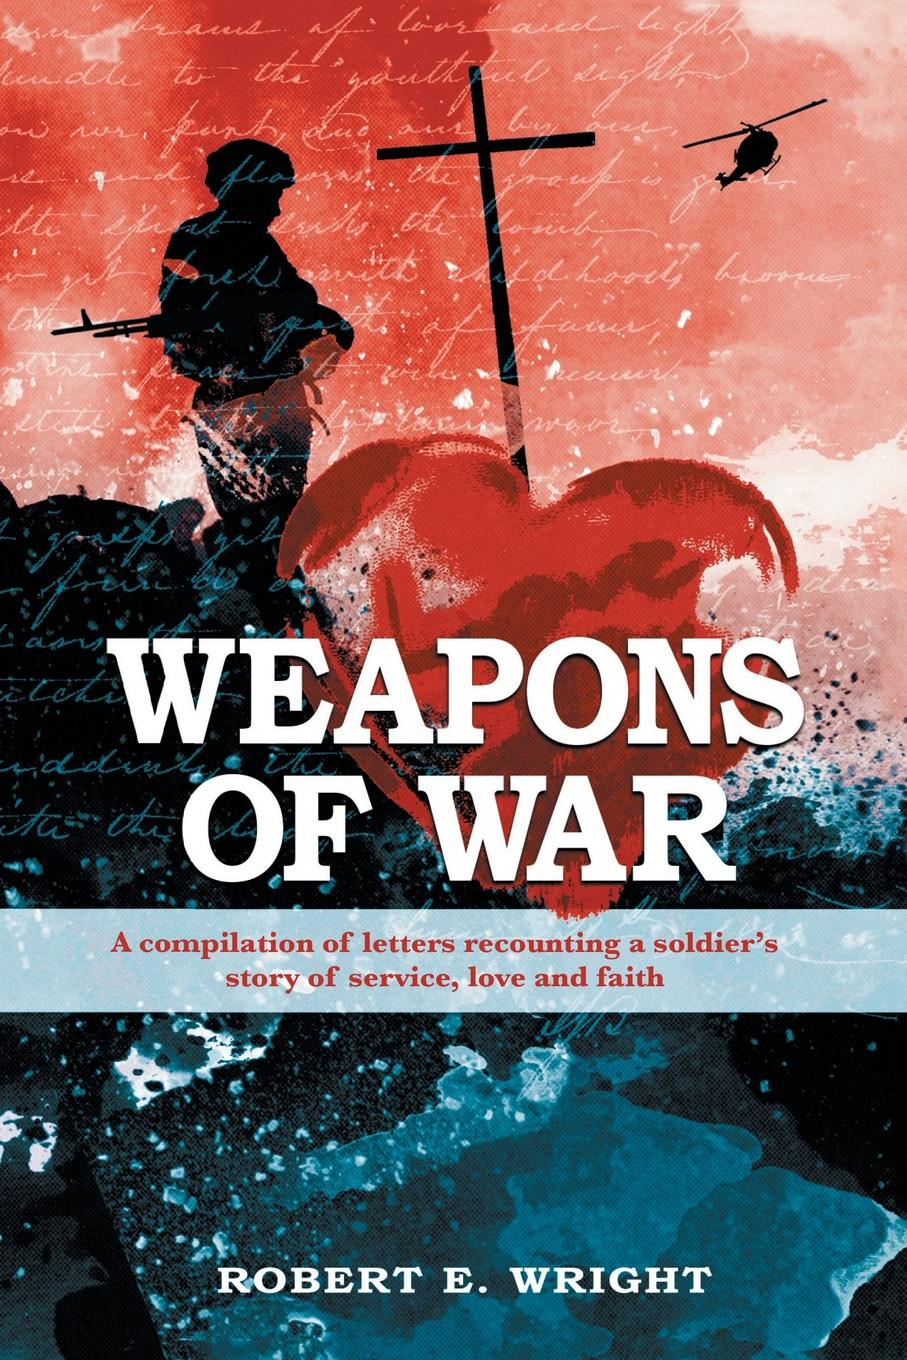 Robert E. Wright Weapons of War. A Compilation of Letters Recounting a Soldier's Story of Service, Love and Faith. me and my army me and my army thank god for sending demons